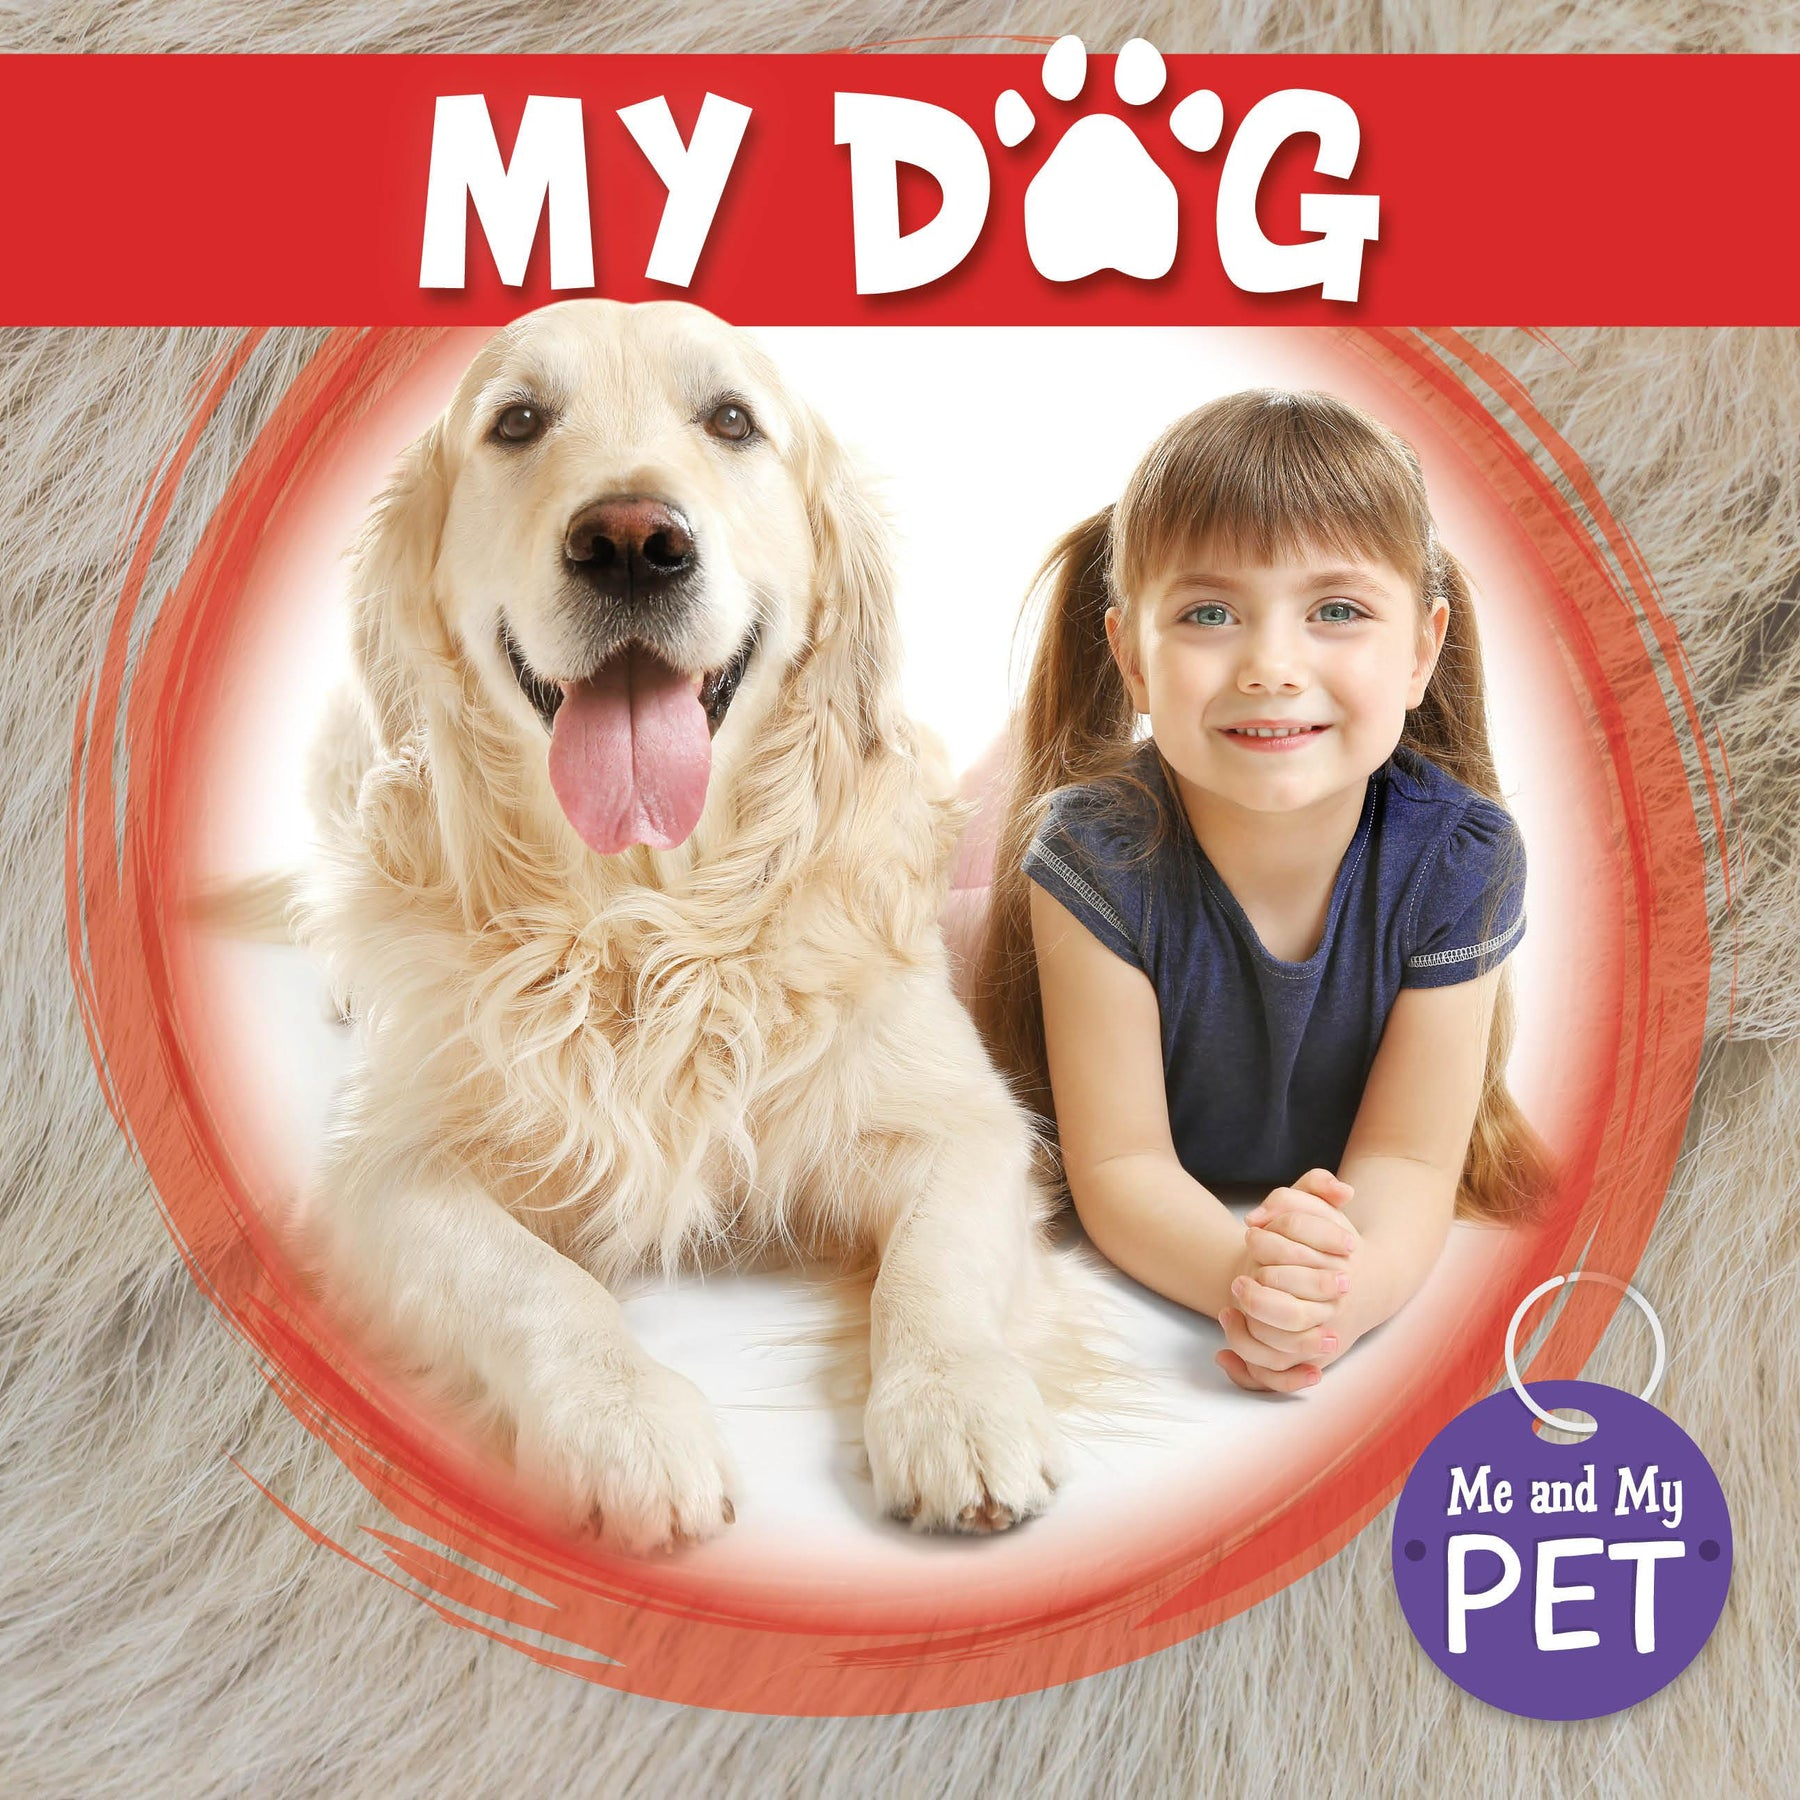 Dog Books, My Pet, Pet Books,